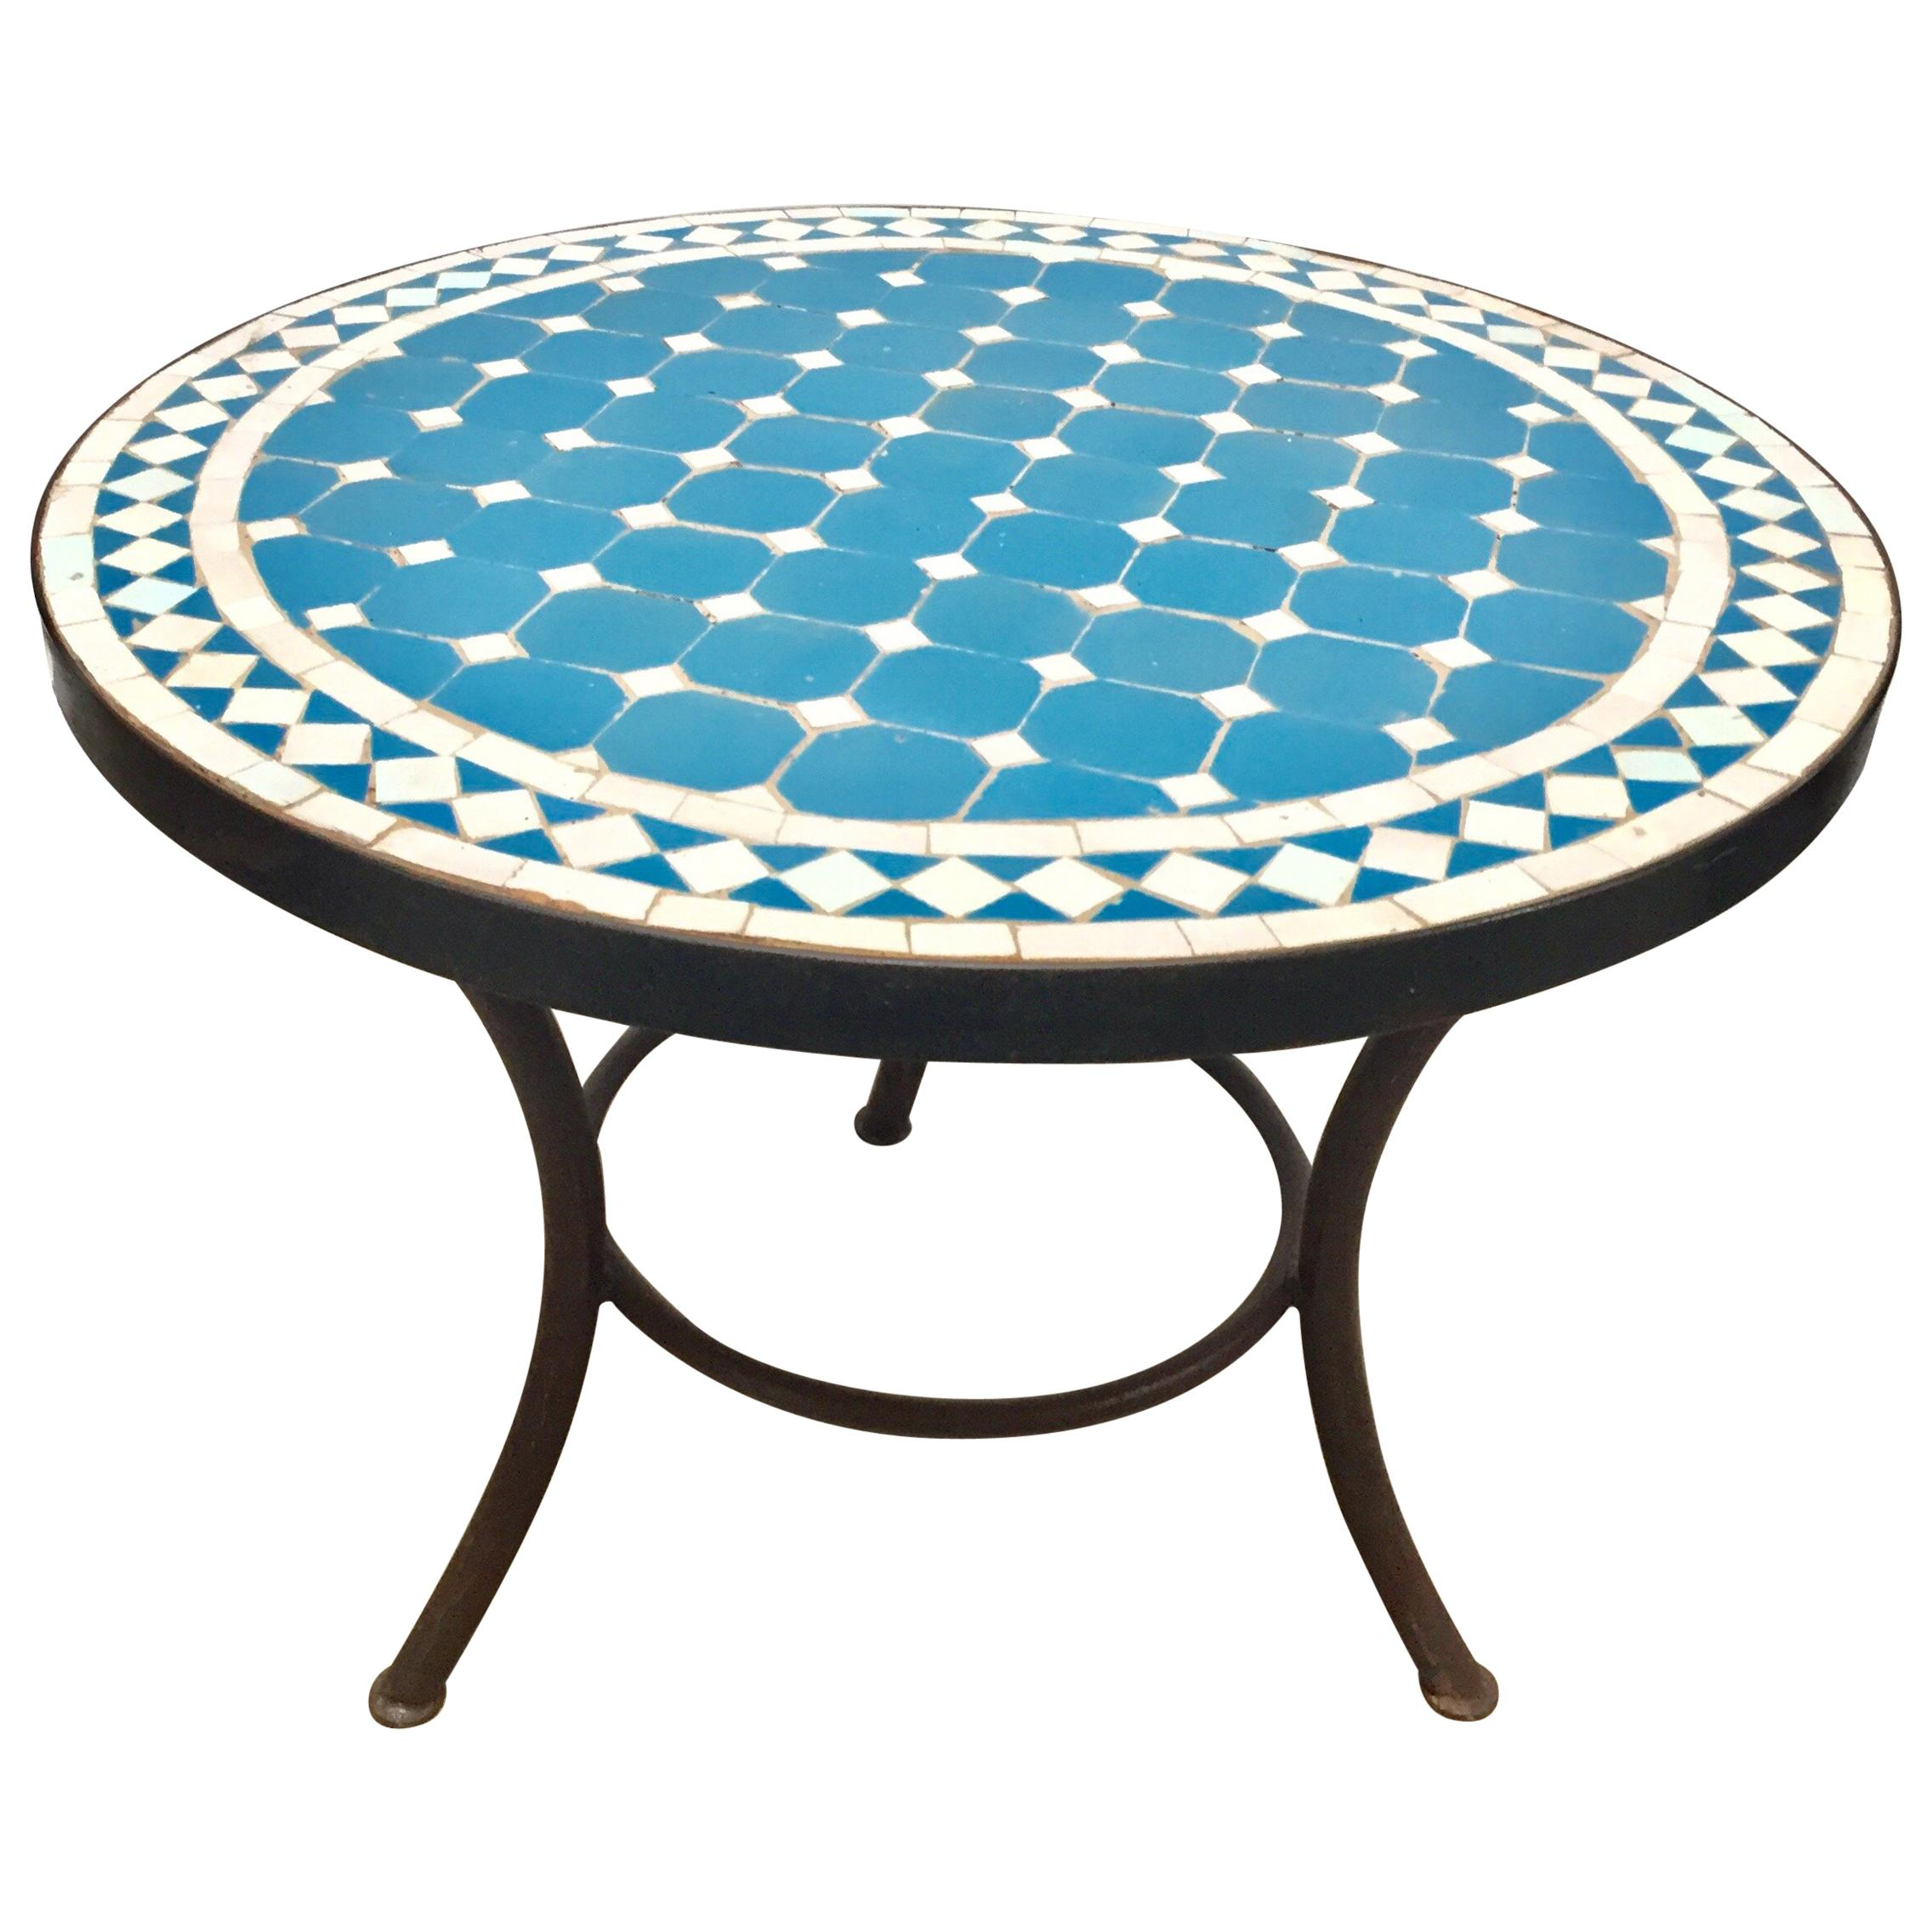 moroccan mosaic outdoor turquoise tile side table low iron base master accent baby changing unit dining room sets small couches for spaces west elm white runner chests and